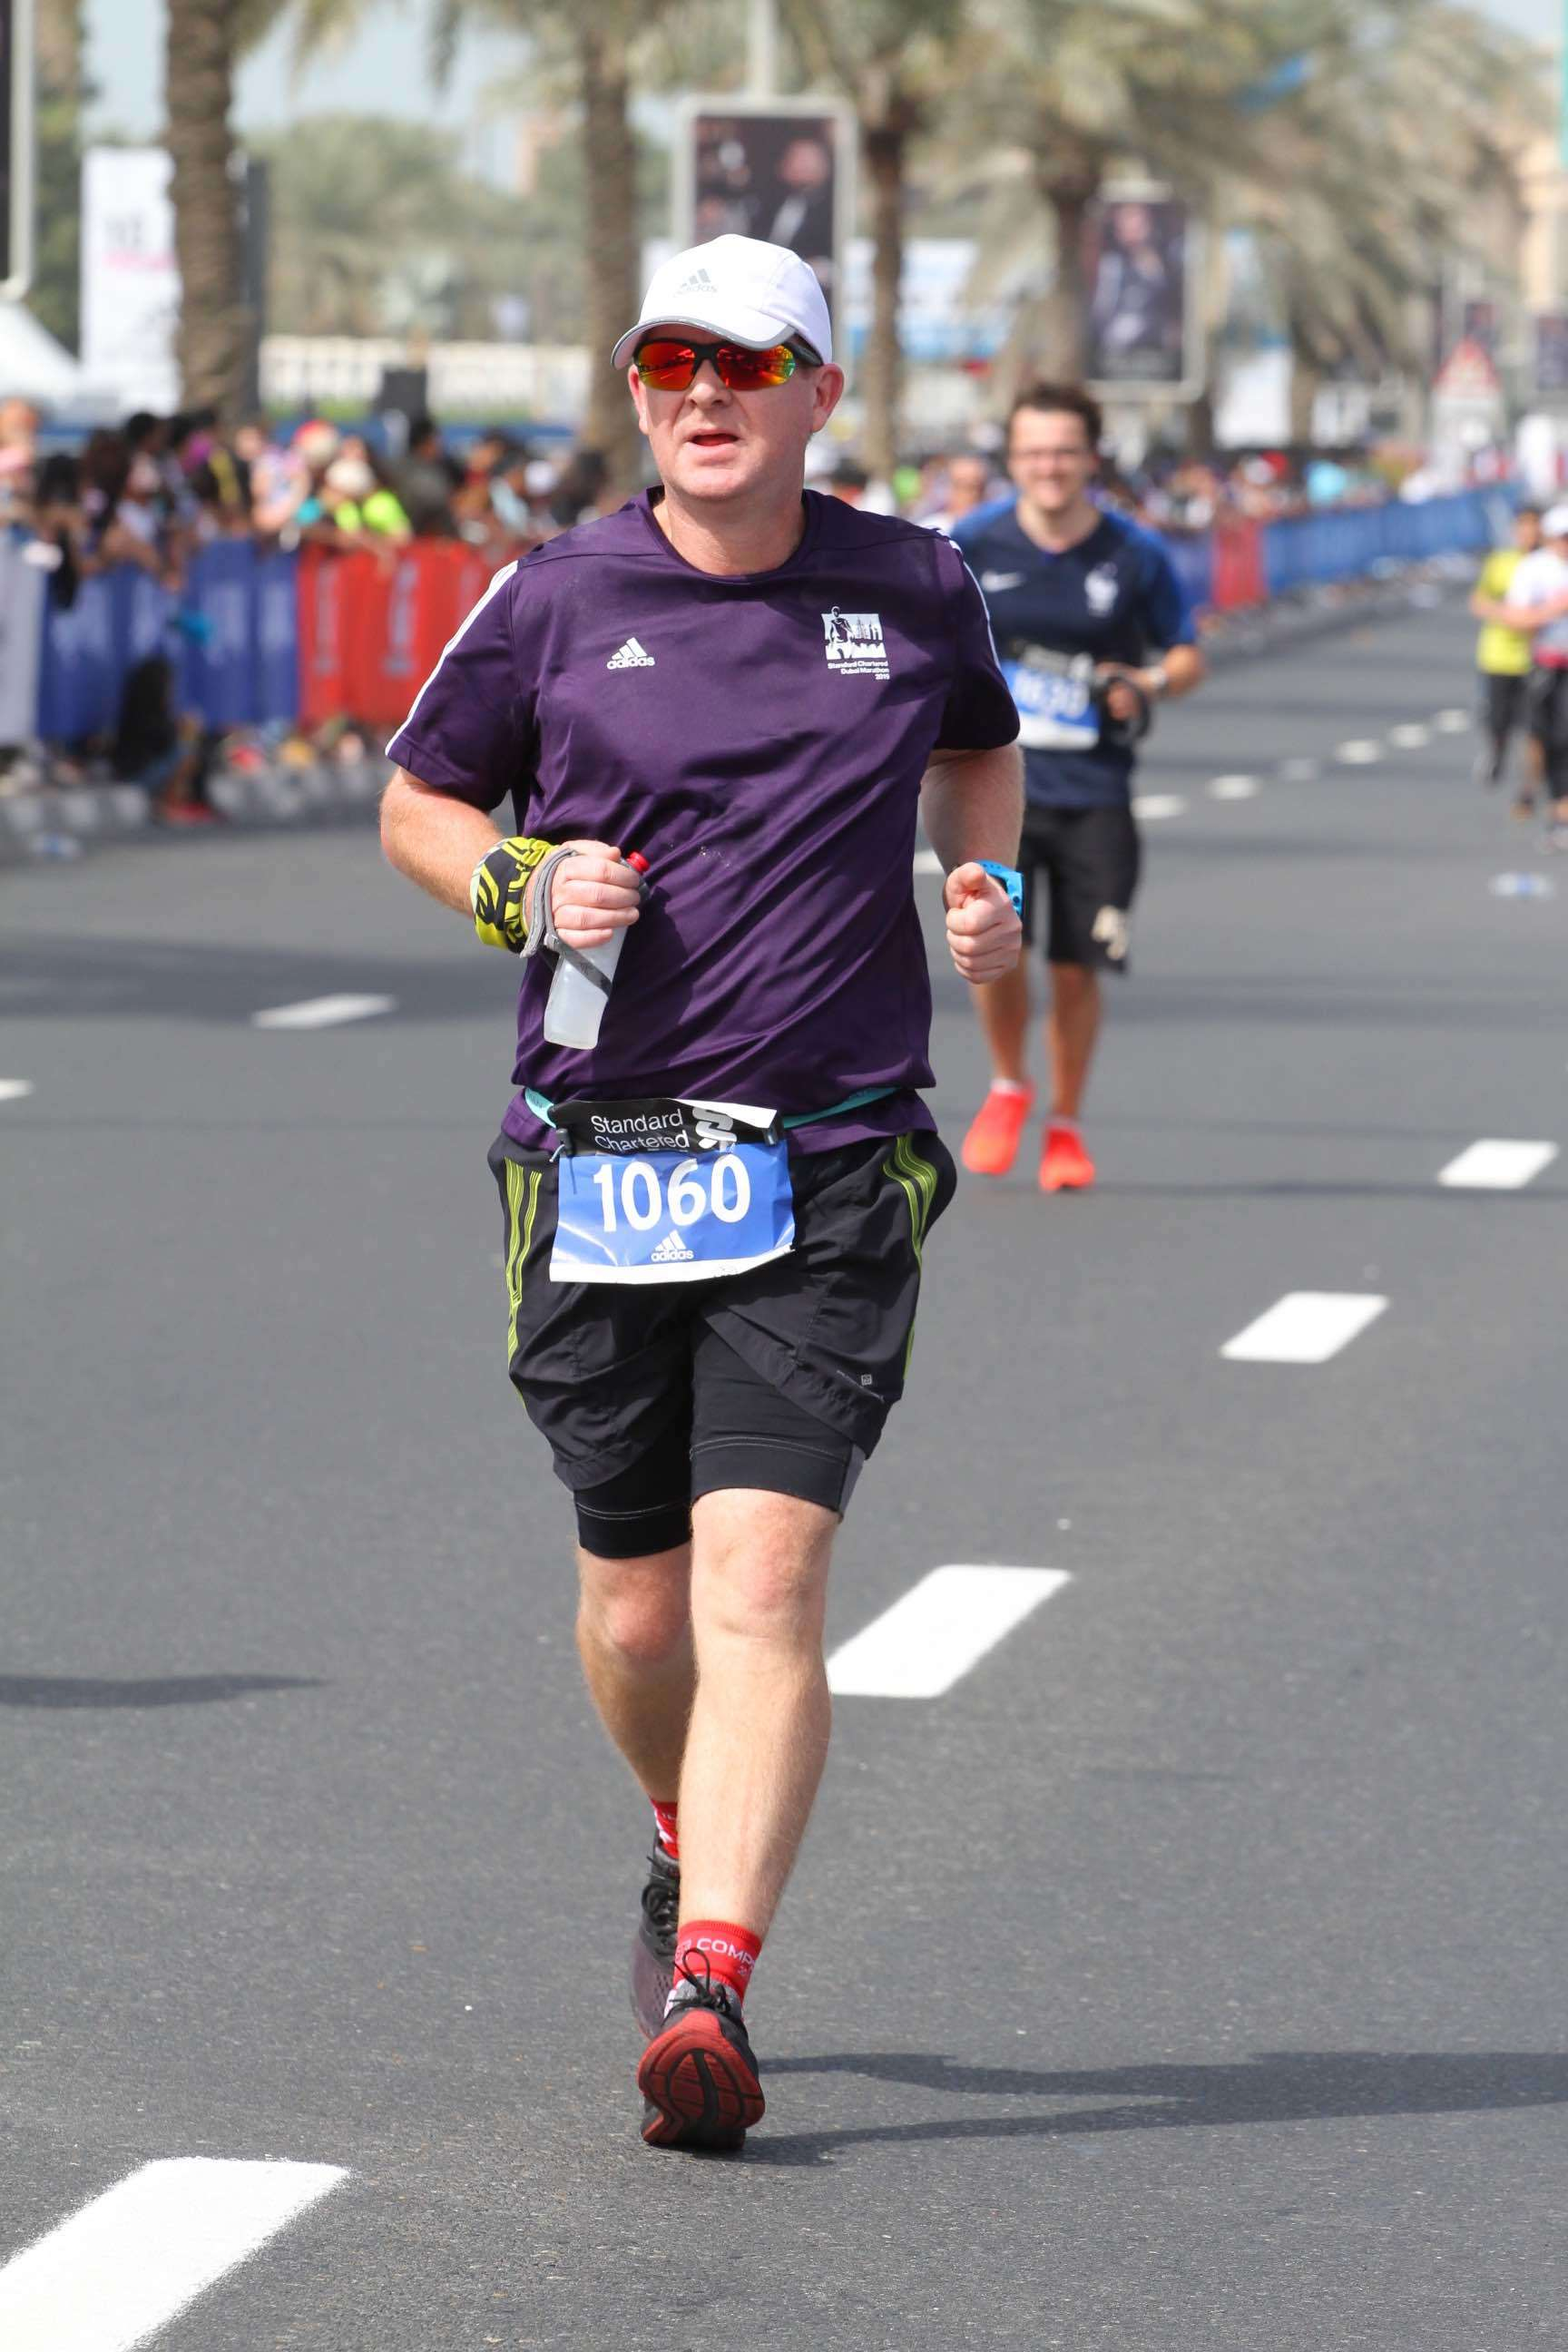 - Jeff looking strong as he heads towards the finish.Jeff has been kind enough to reflect upon the first few months of coaching with us and share where he has felt the most benefit:*The informal casual banter and encouragement via What's App is complimented by the serious tips and notes on training peaks. To me it feels like training peaks = 'this is coach speaking, follow these instructions and get it done' and What's App is 'c'mon mate, we are really rooting for you and cheering you on'. I love that balance.*I loved how you realised that getting me plugged into events on the weekend was 'my thing'. I really am not much of a plodder so knowing that I have to commit to and run an event on the weekend gave me really good goals. From September to January I ran six big races including two half marathons and two 20km desert trail races. These really helped keep focus. The 25km training run with Daz really helped understand nutrition and fueling. I didn't hit a 'wall' in the marathon because i was so well briefed on the use of fuel, in particular the Tailwind and the gels. Chatting about fuel also helped to inform the meal plan for the entire month leading up the race, especially the last seven days.